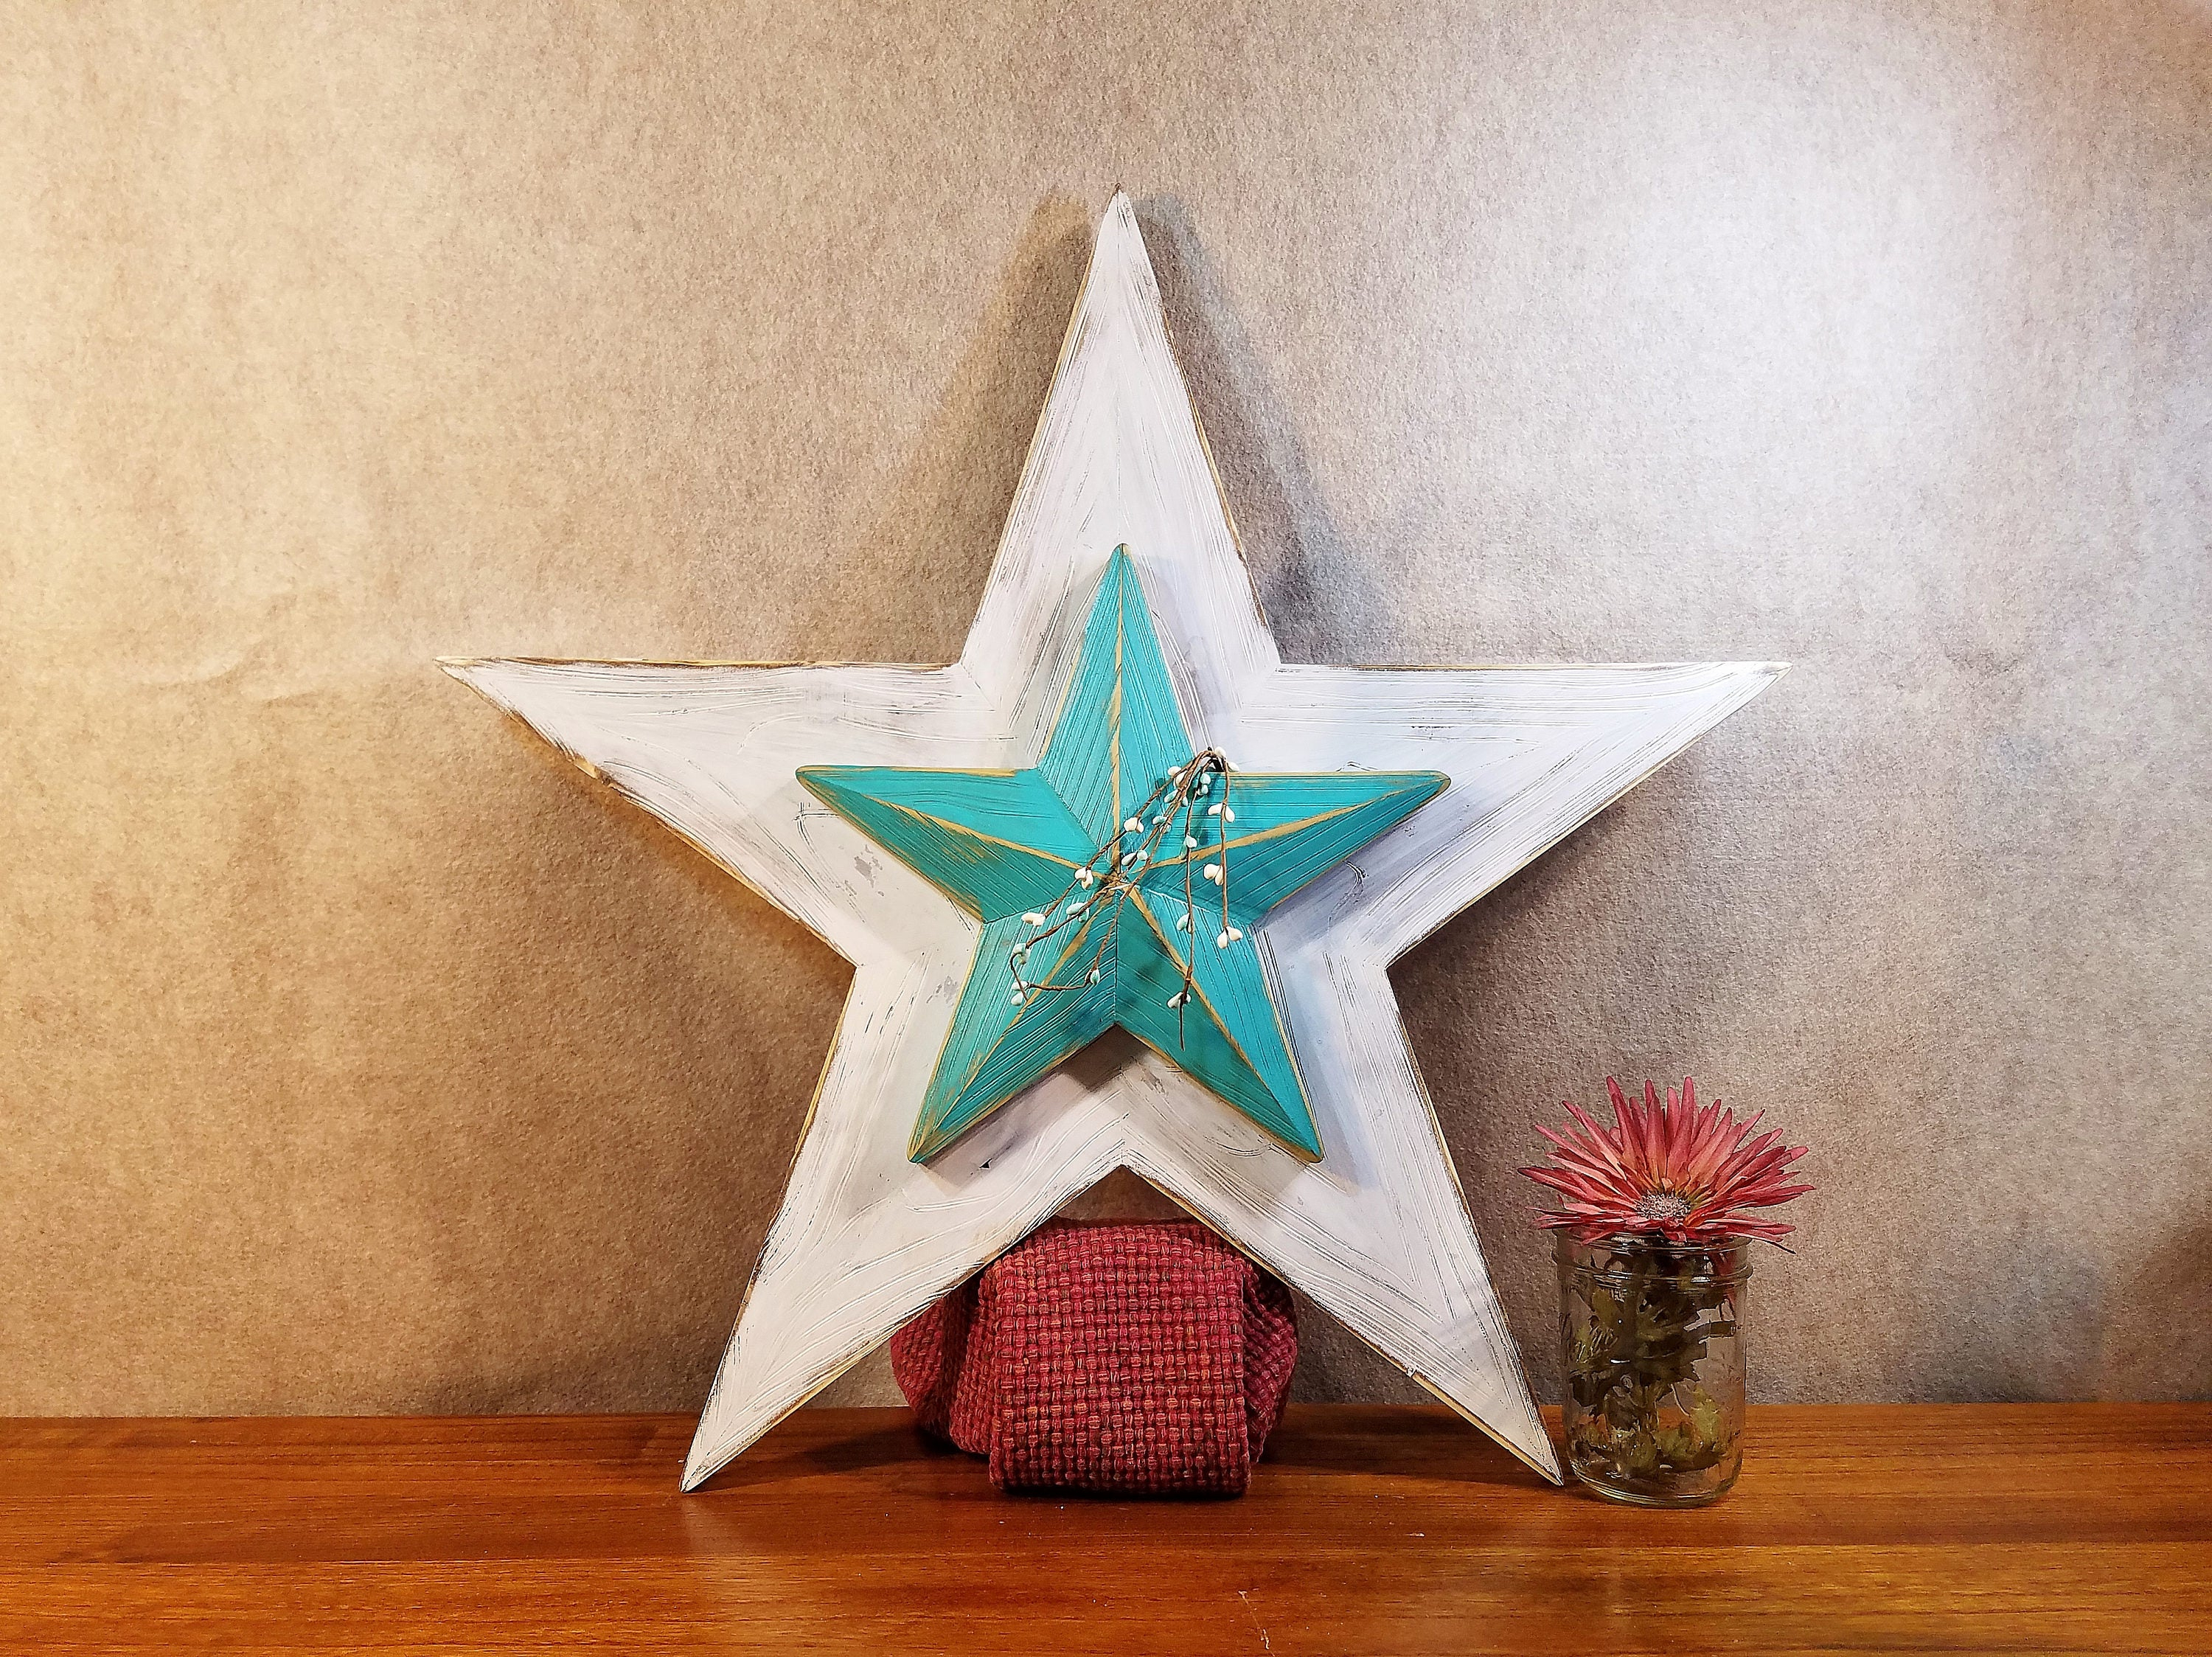 Rustic Wood Star, Barn Star, Set Of 2, Farmhouse Style, Home Decor, Wall  Hanging, Painted Wooden Star, 10 Separate Cuts, White And Teal With Raised Star Wall Decor (Gallery 7 of 30)